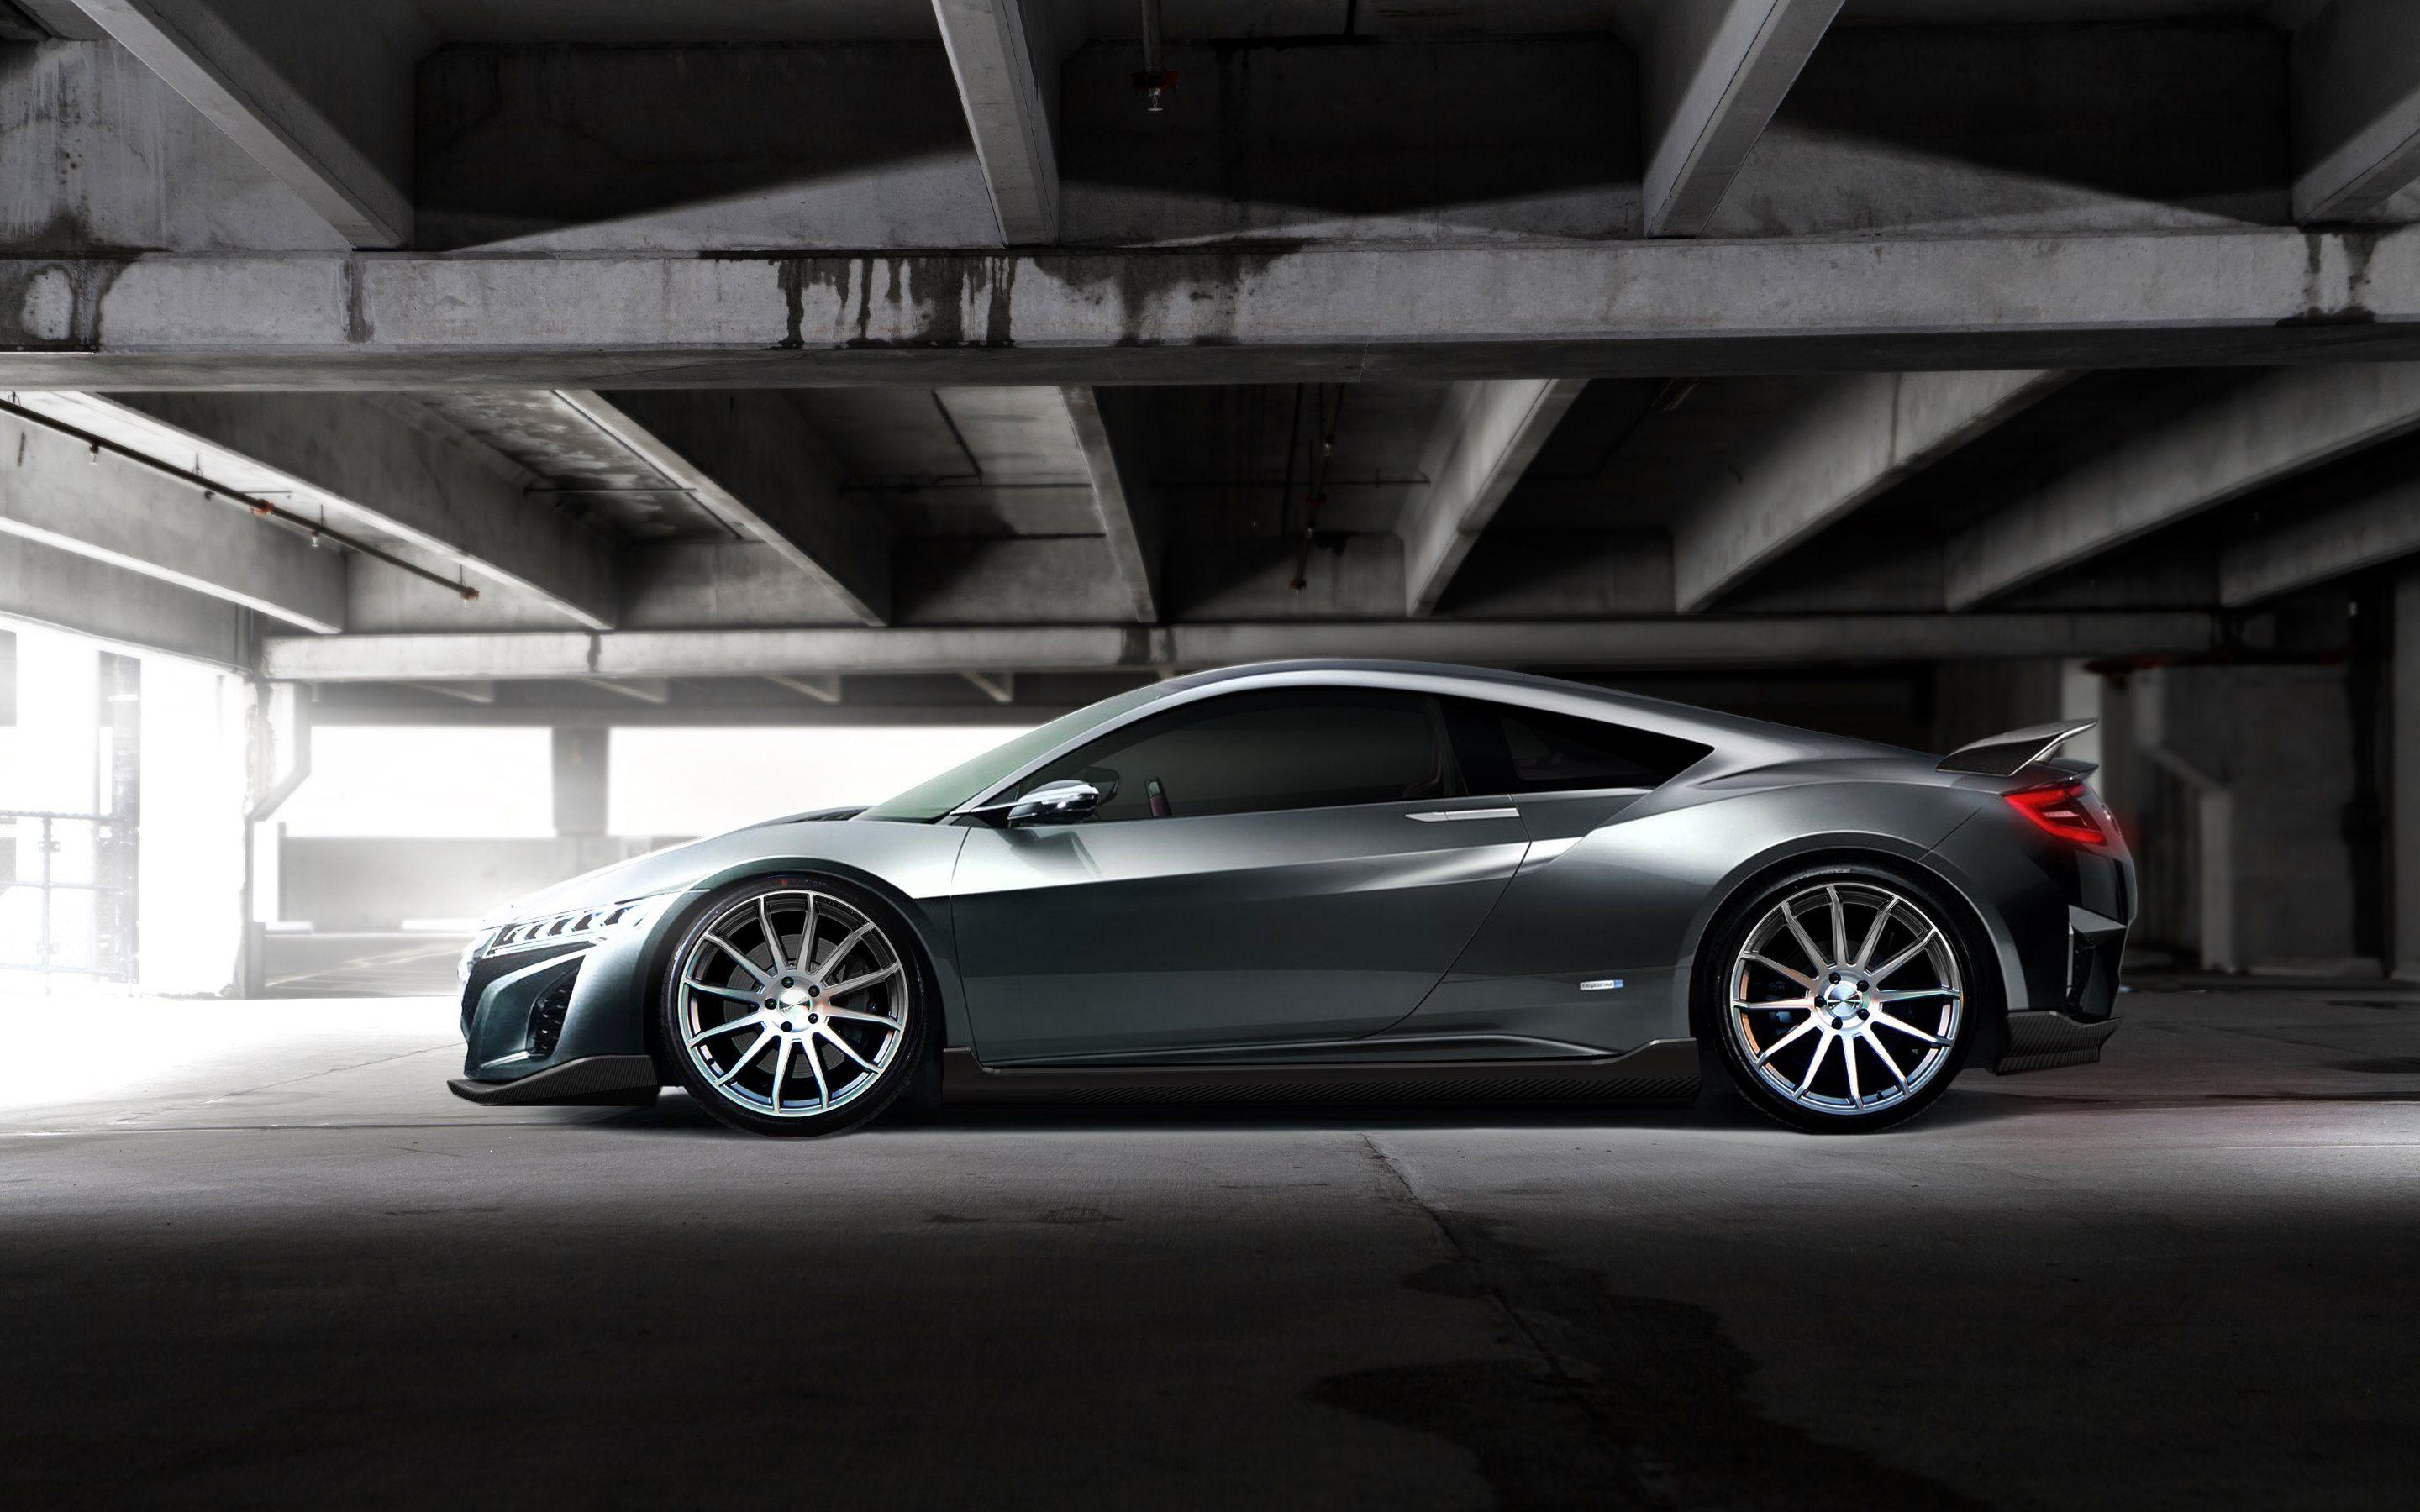 Acura Nsx Wallpapers - CityLoveHZ.com